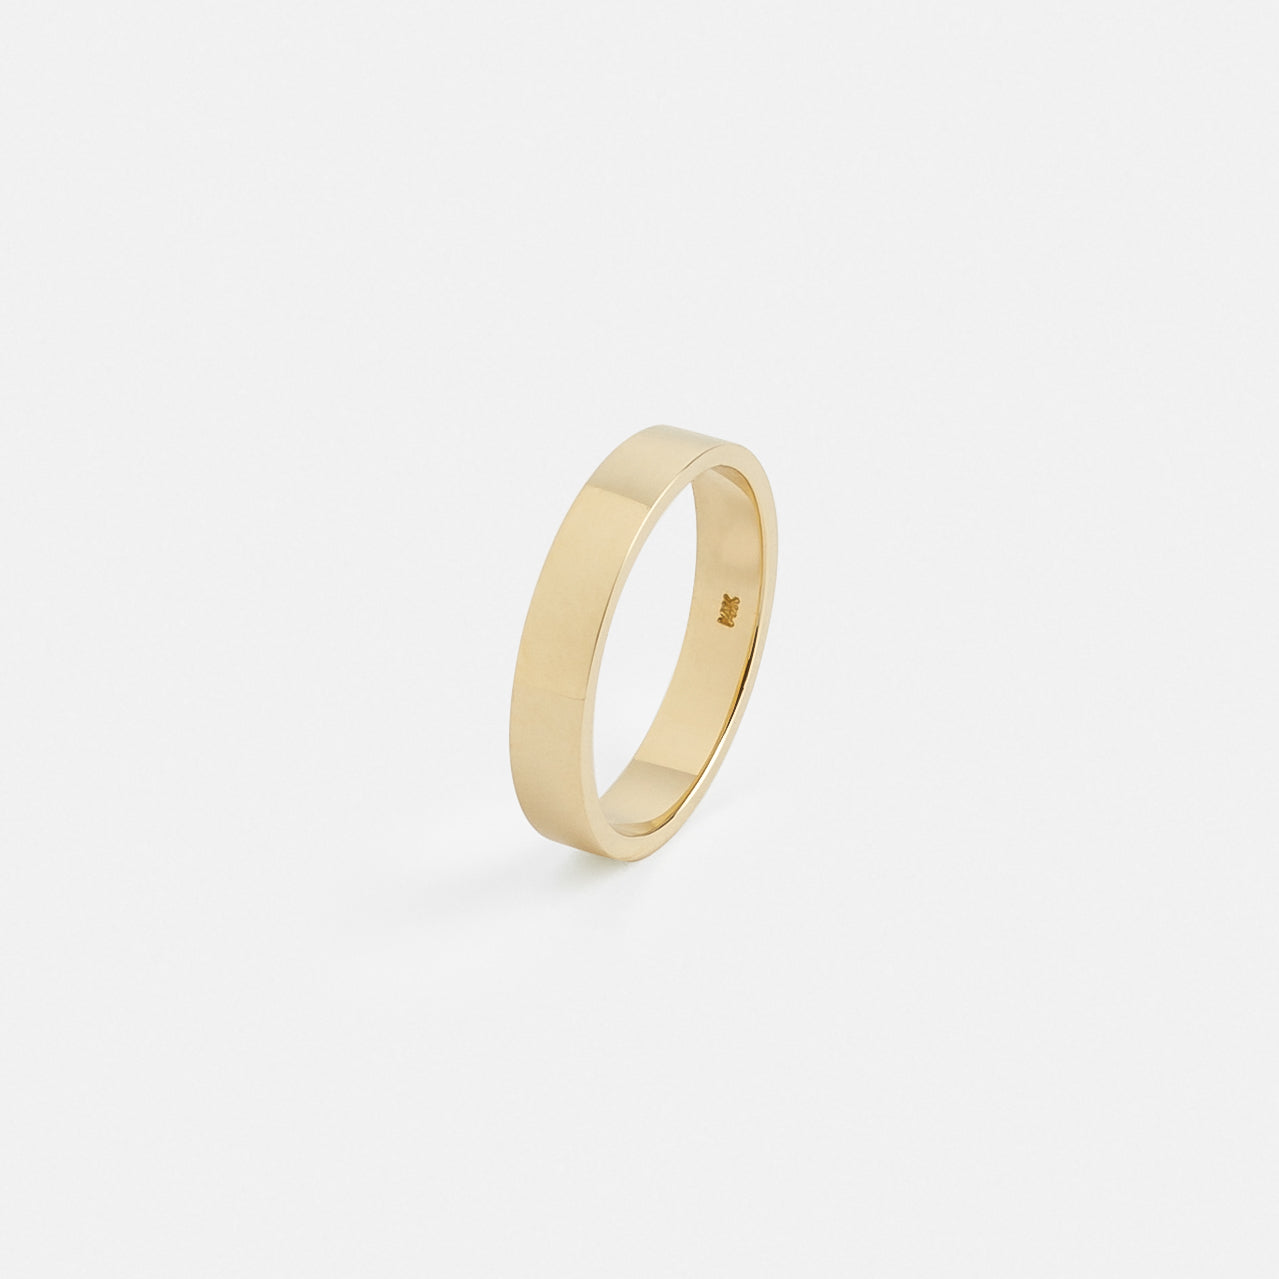 Eldo Ring in Gold